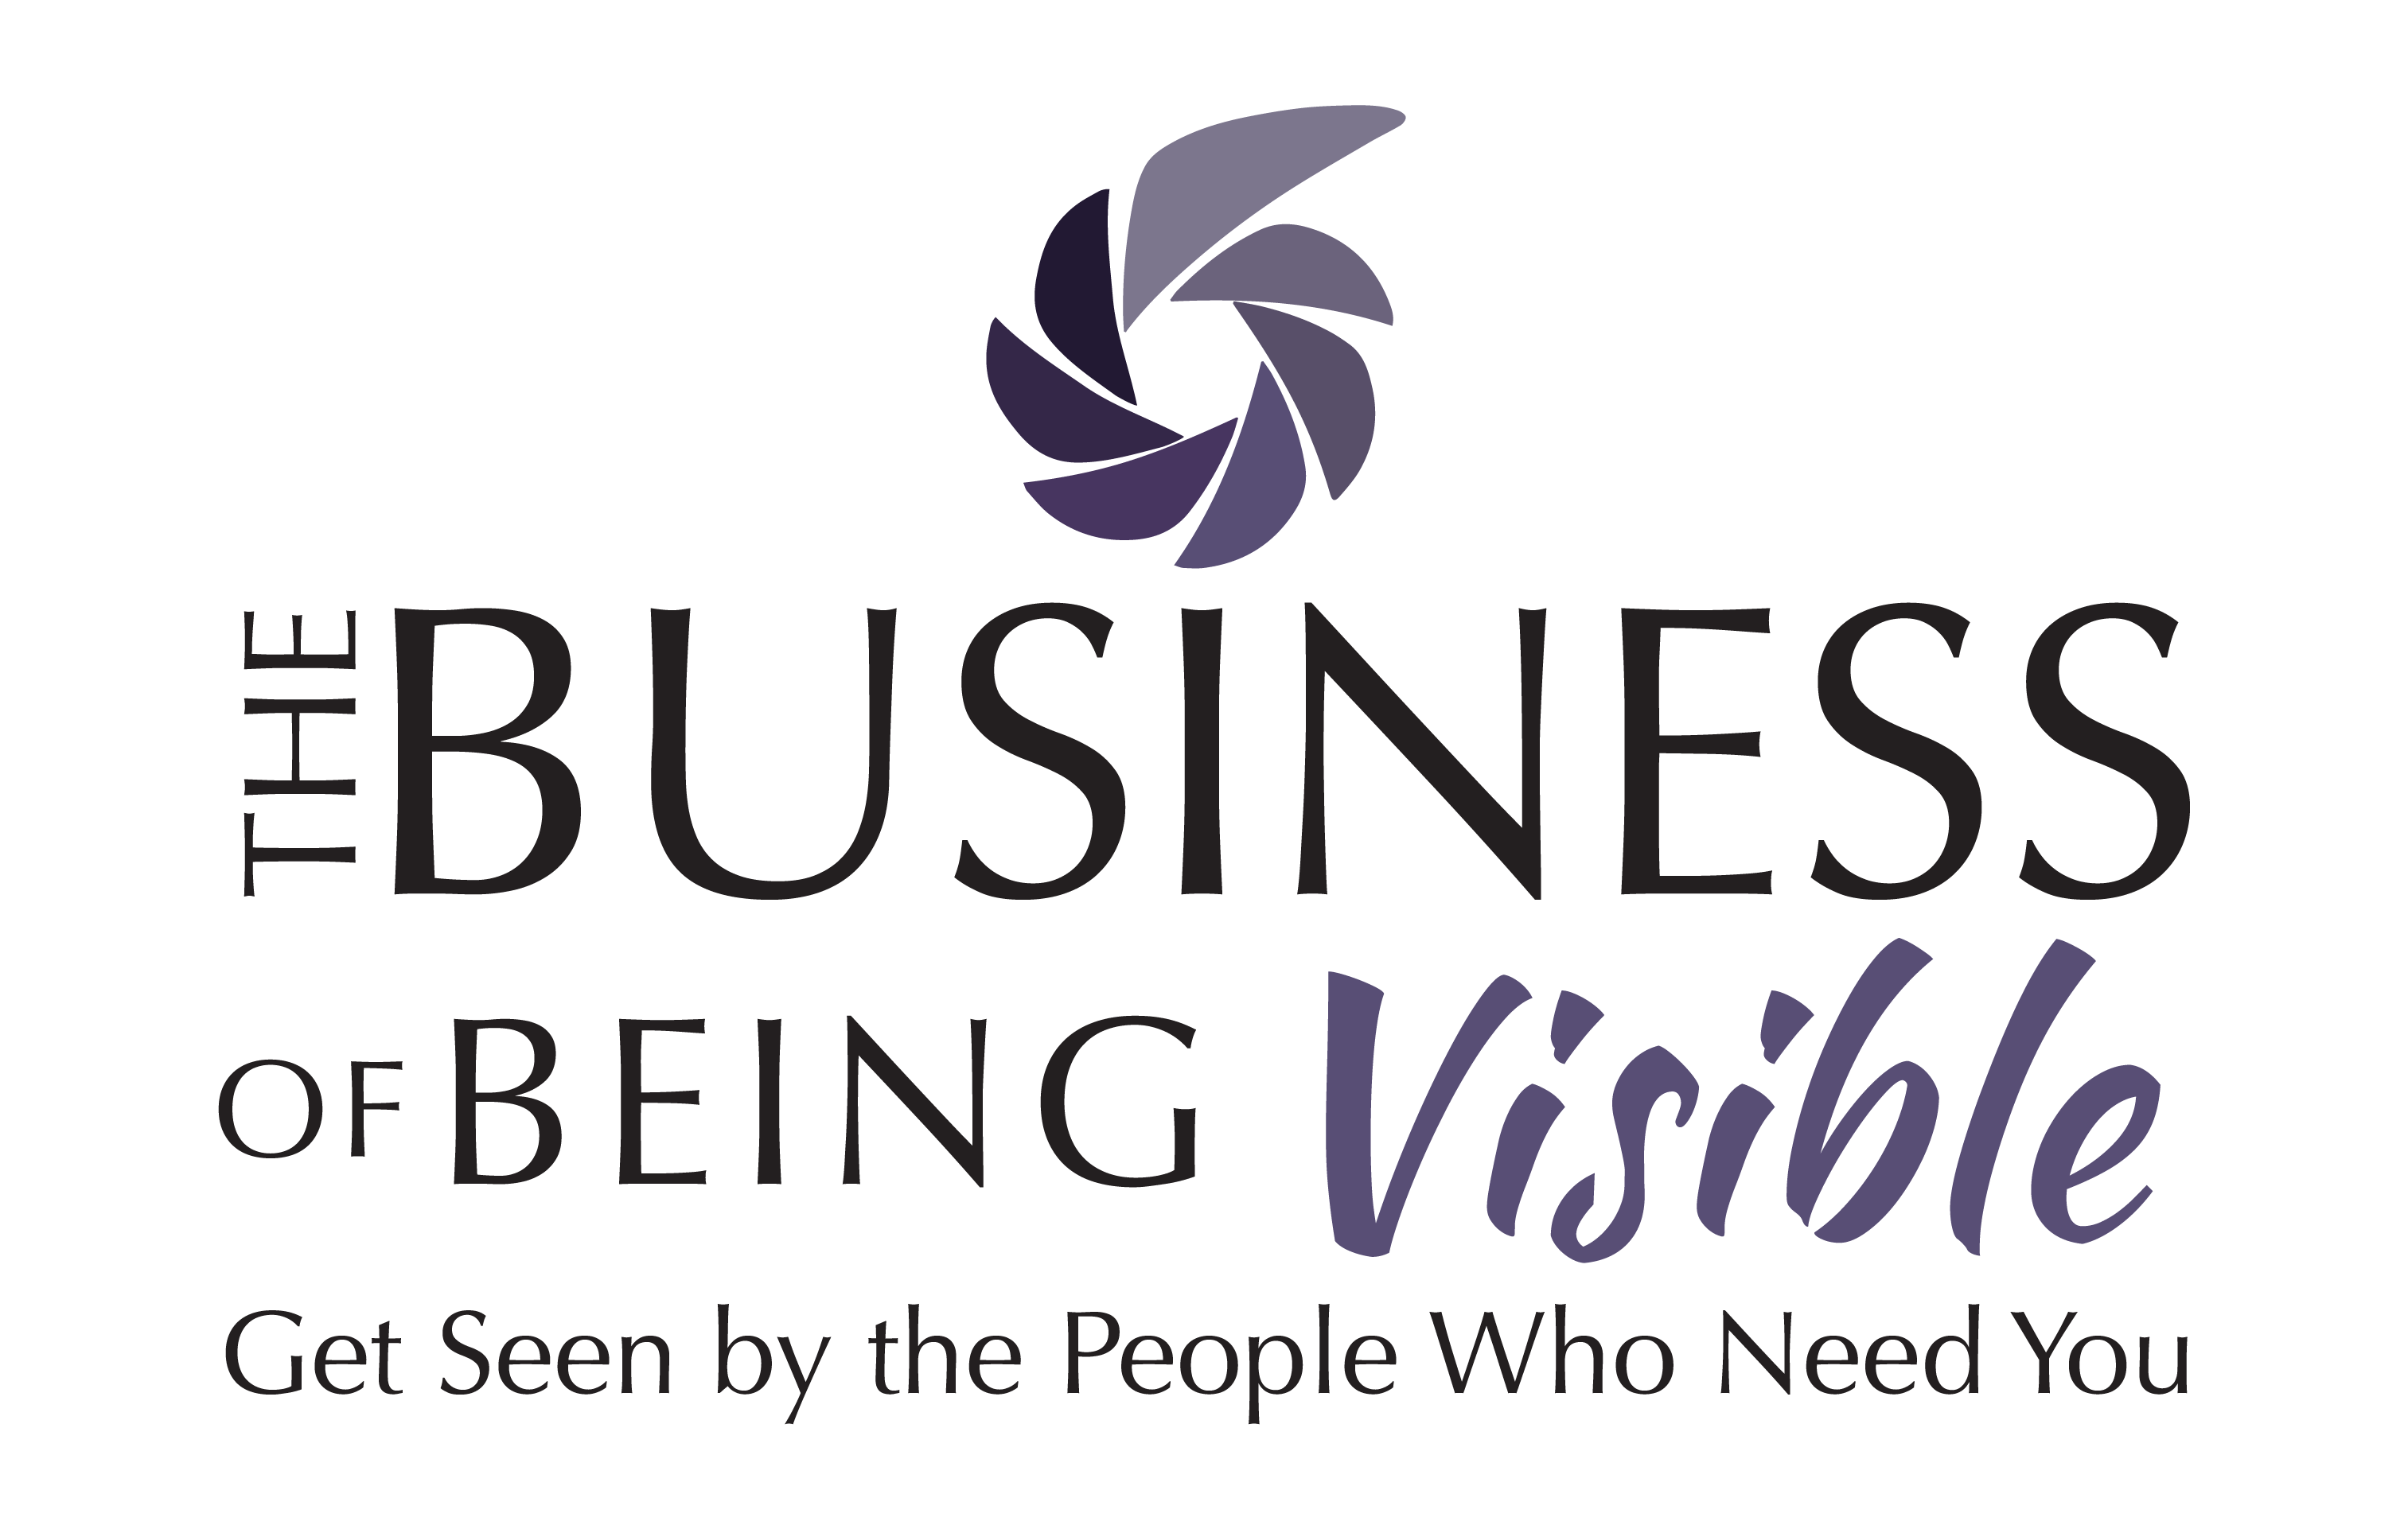 The Business of Being Visible Logo 01